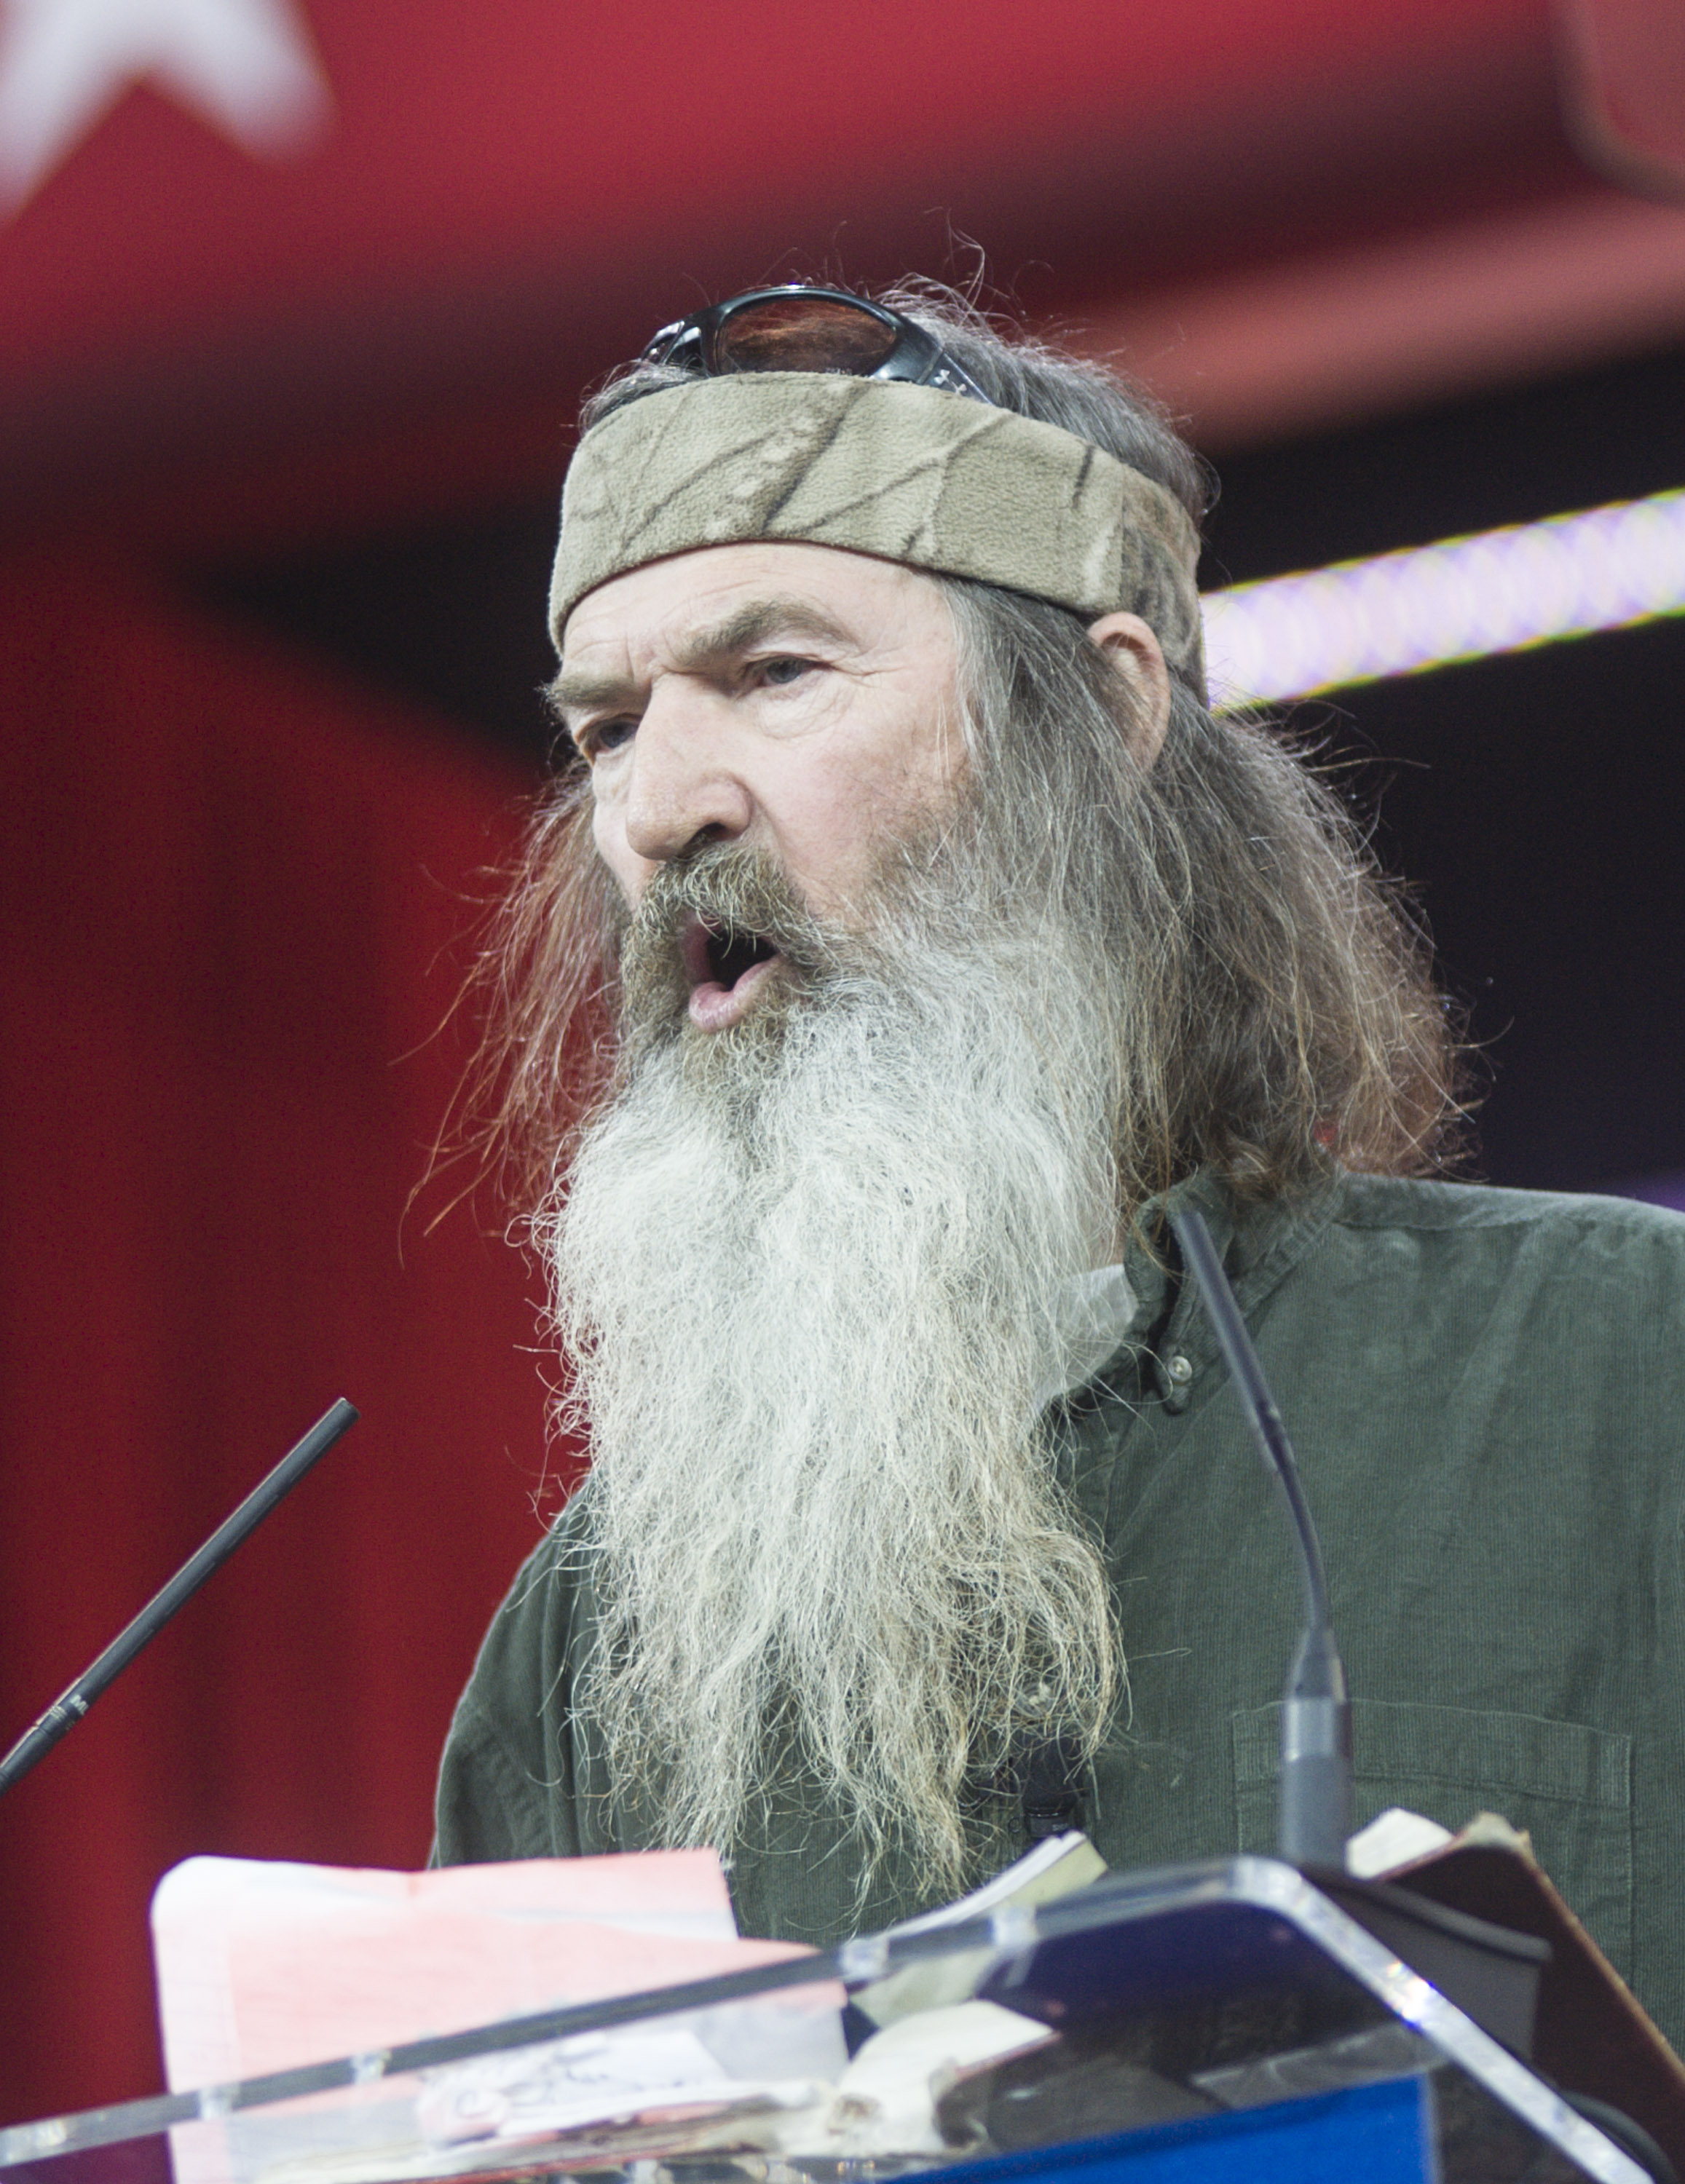 Phil Robertson of A&E's Duck Dynasty addresses the 42nd annual Conservative Political Action Conference (CPAC) at the Gaylord National Resort Hotel and Convention Center on February 27, 2015 in National Harbor, Maryland.